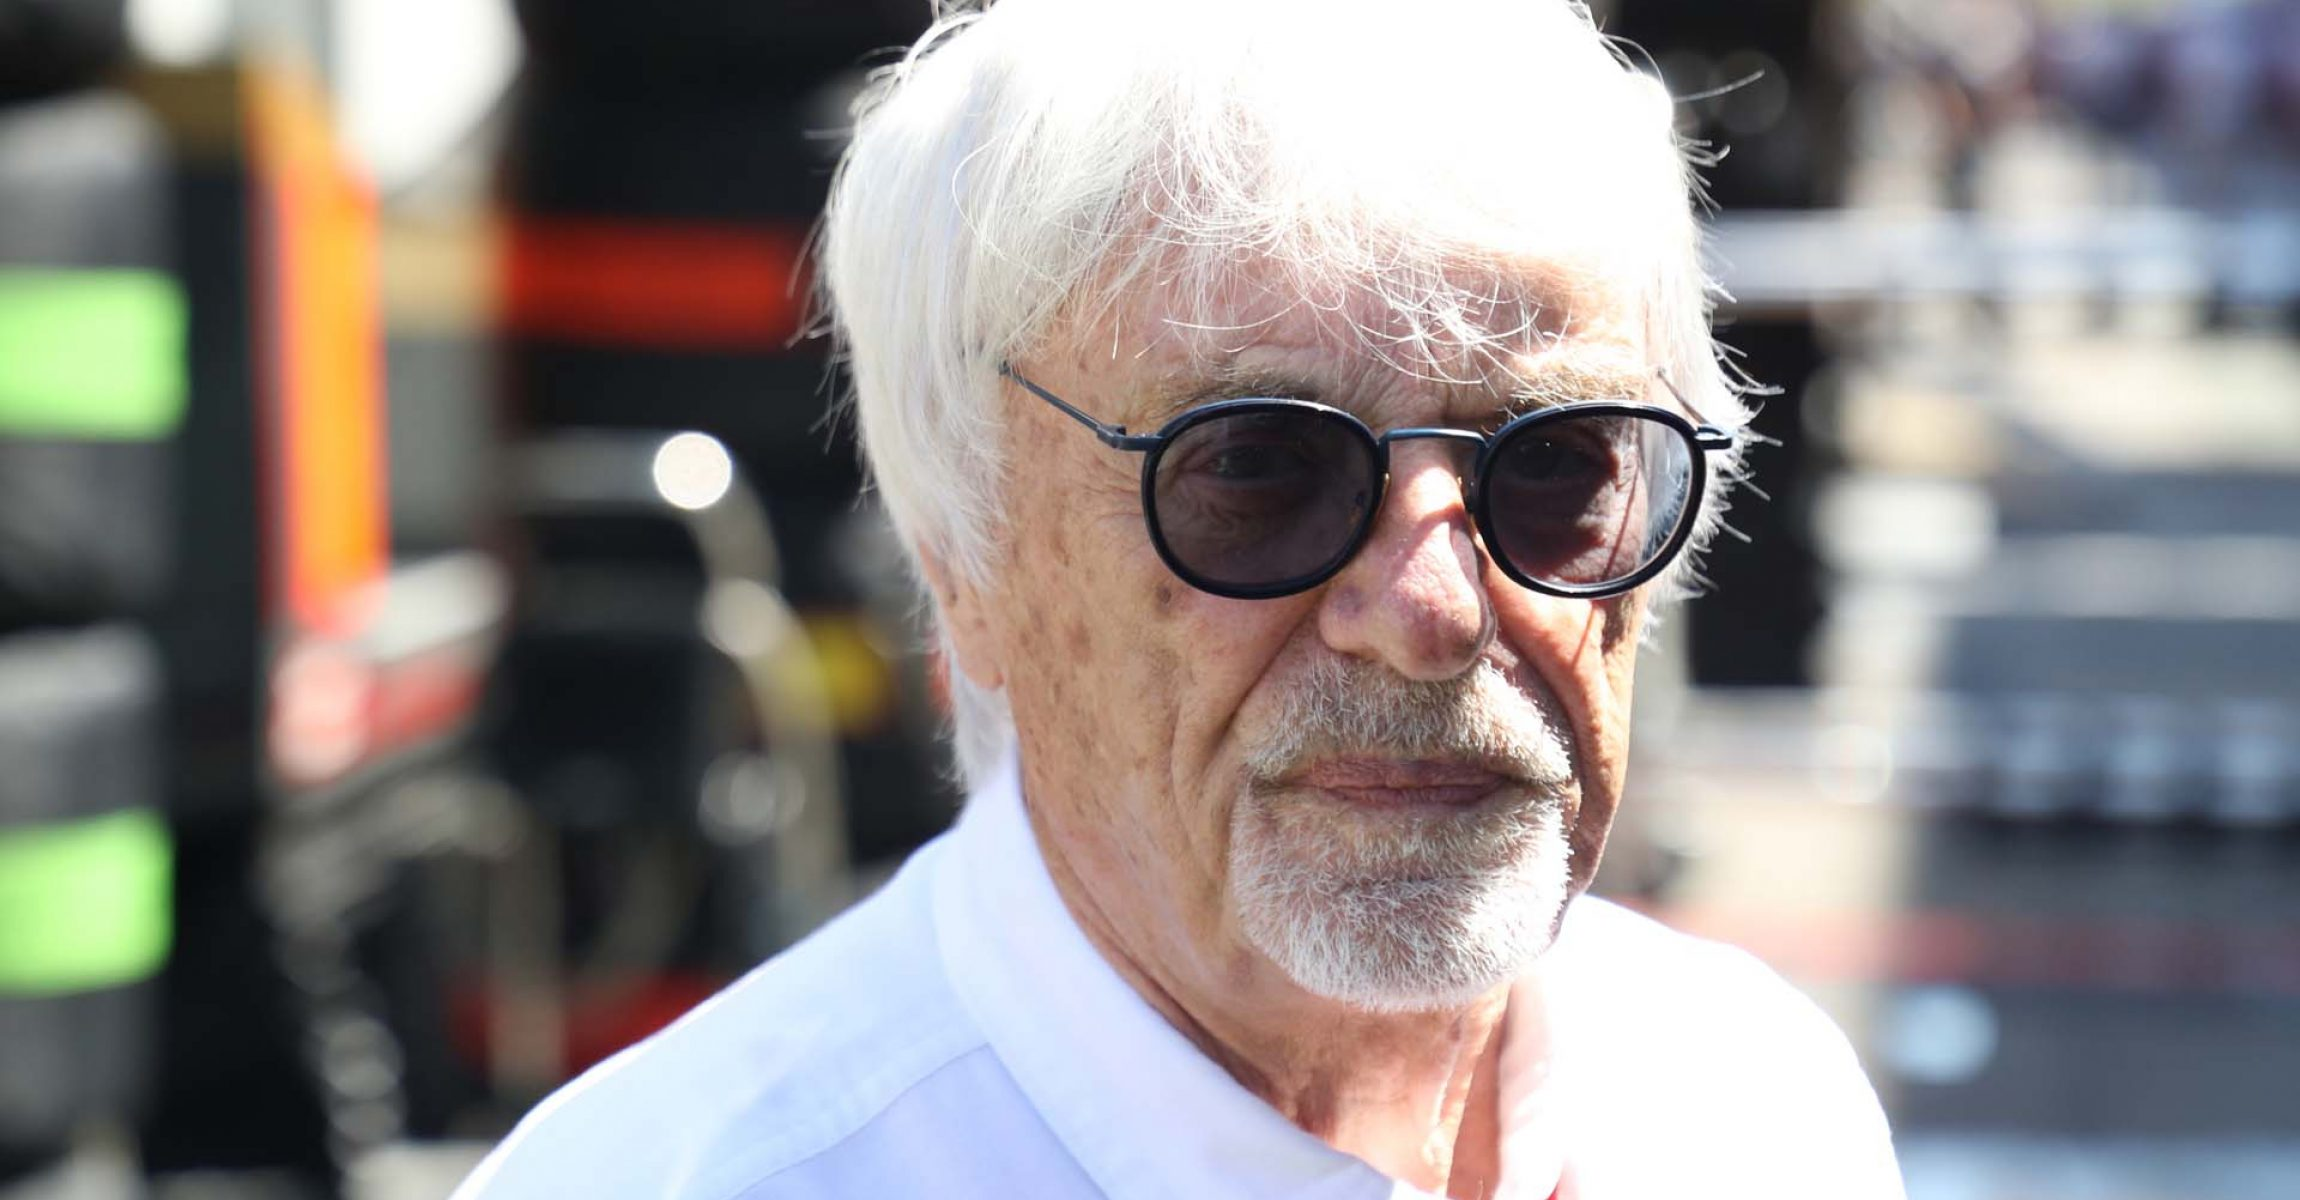 SPIELBERG,AUSTRIA,28.JUN.19 - MOTORSPORTS, FORMULA 1 - Grand Prix of Austria, Red Bull Ring, free practice. Image shows Bernie Ecclestone. Photo: GEPA pictures/ Andreas Pranter - For editorial use only. Image is free of charge.